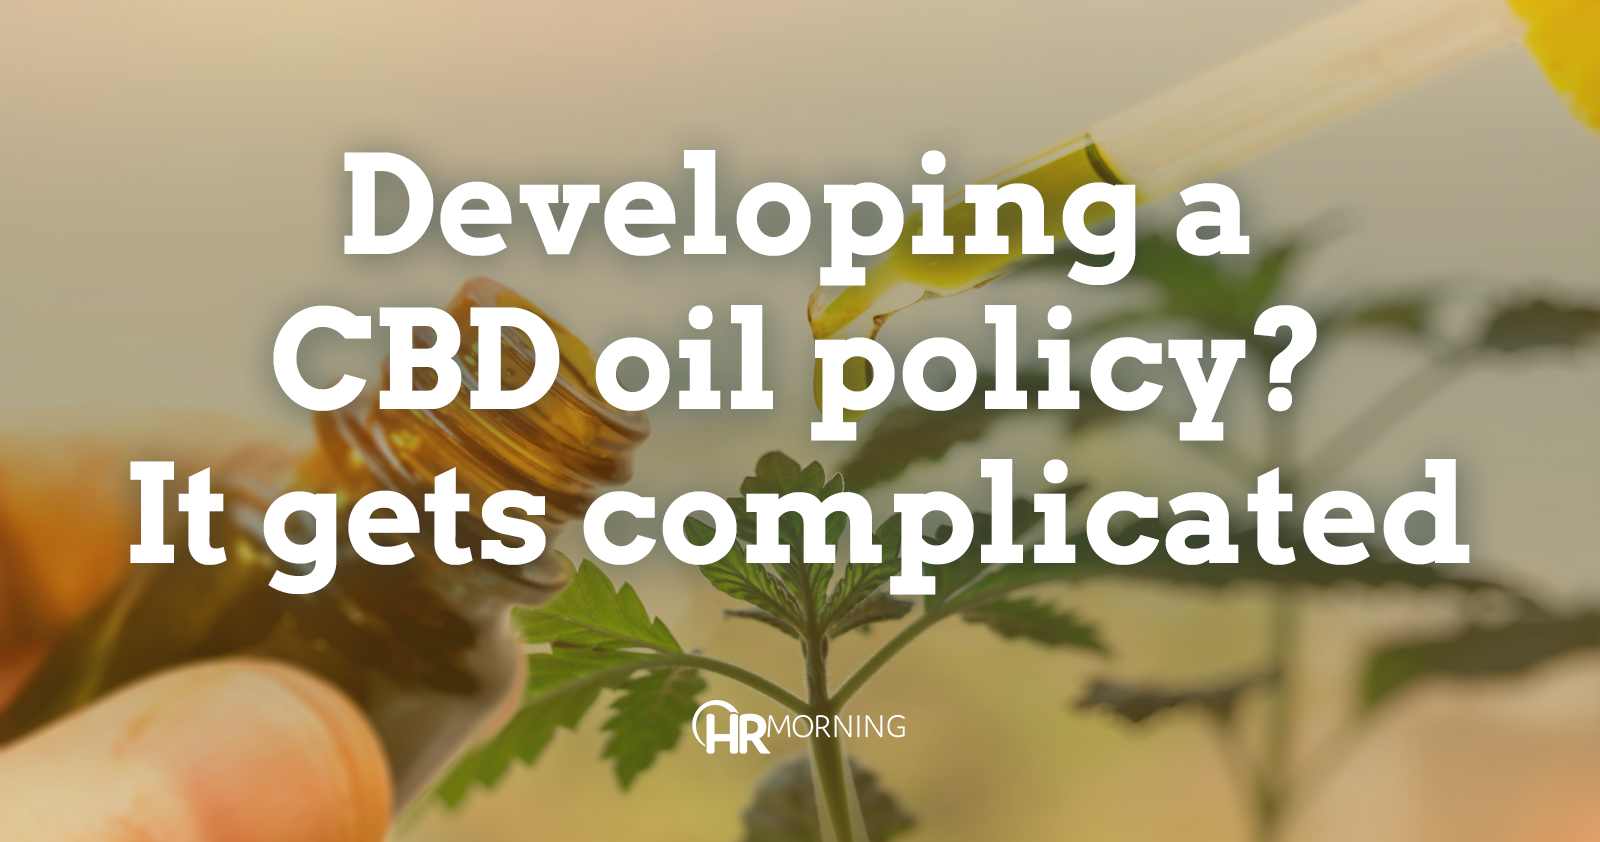 Developing a CBD oil policy